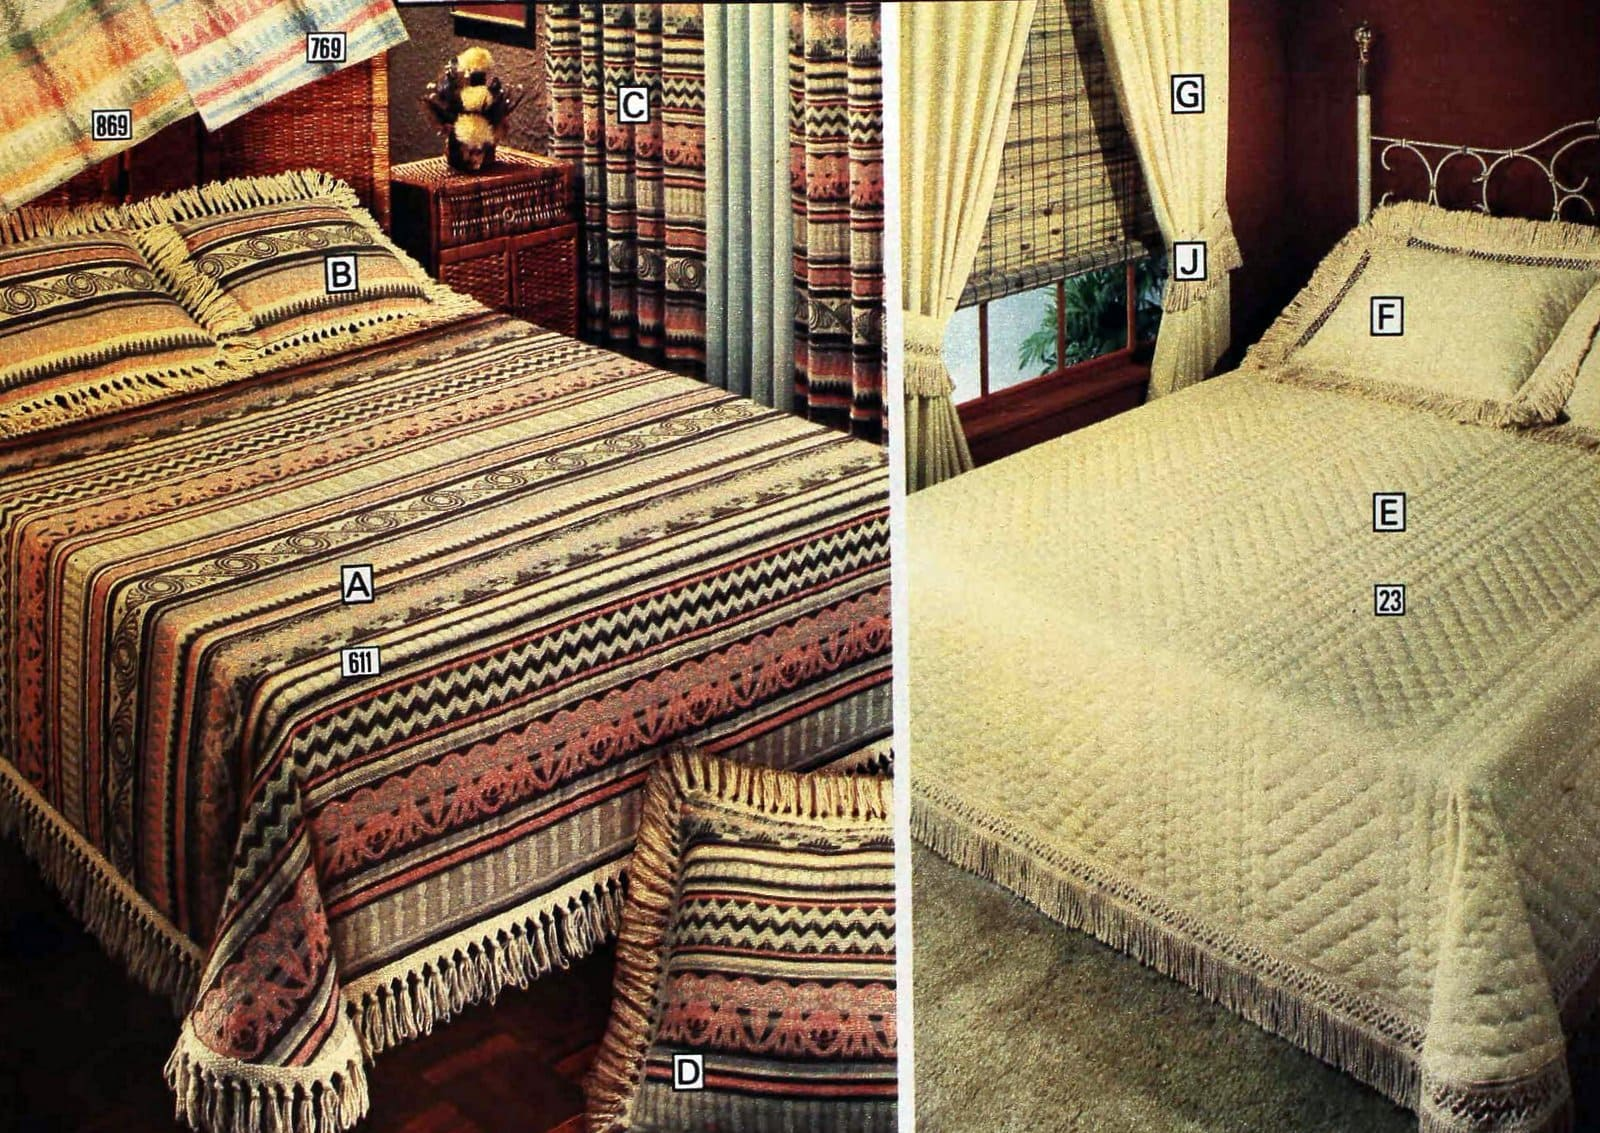 1970s Karim and Bokhara textured bedspreads